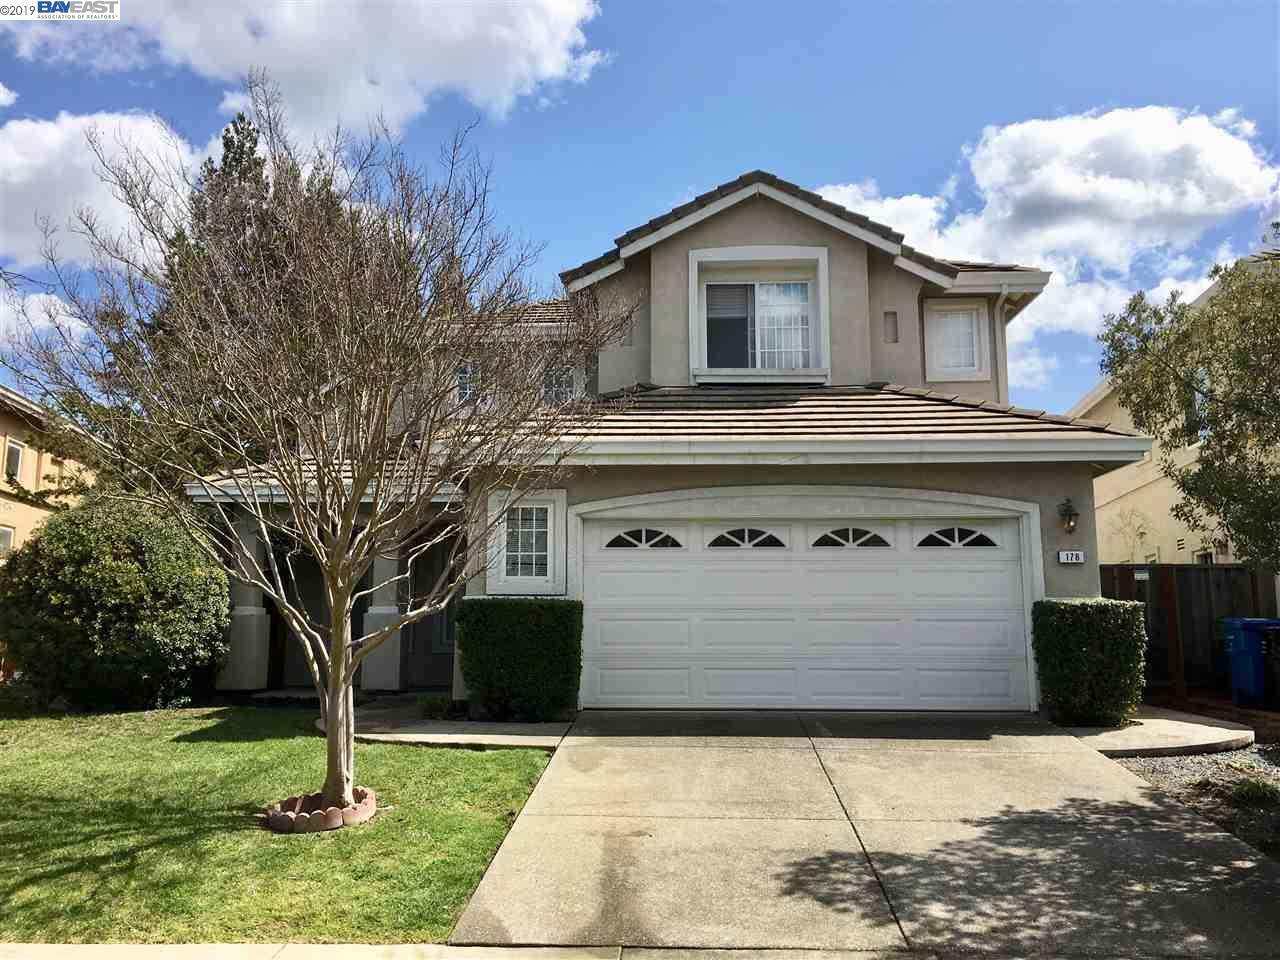 178 Blackstone Dr Danville, California 94506, 4 Bedrooms Bedrooms, 9 Rooms Rooms,3 BathroomsBathrooms,Residential,For Sale,178 Blackstone Dr,40858930